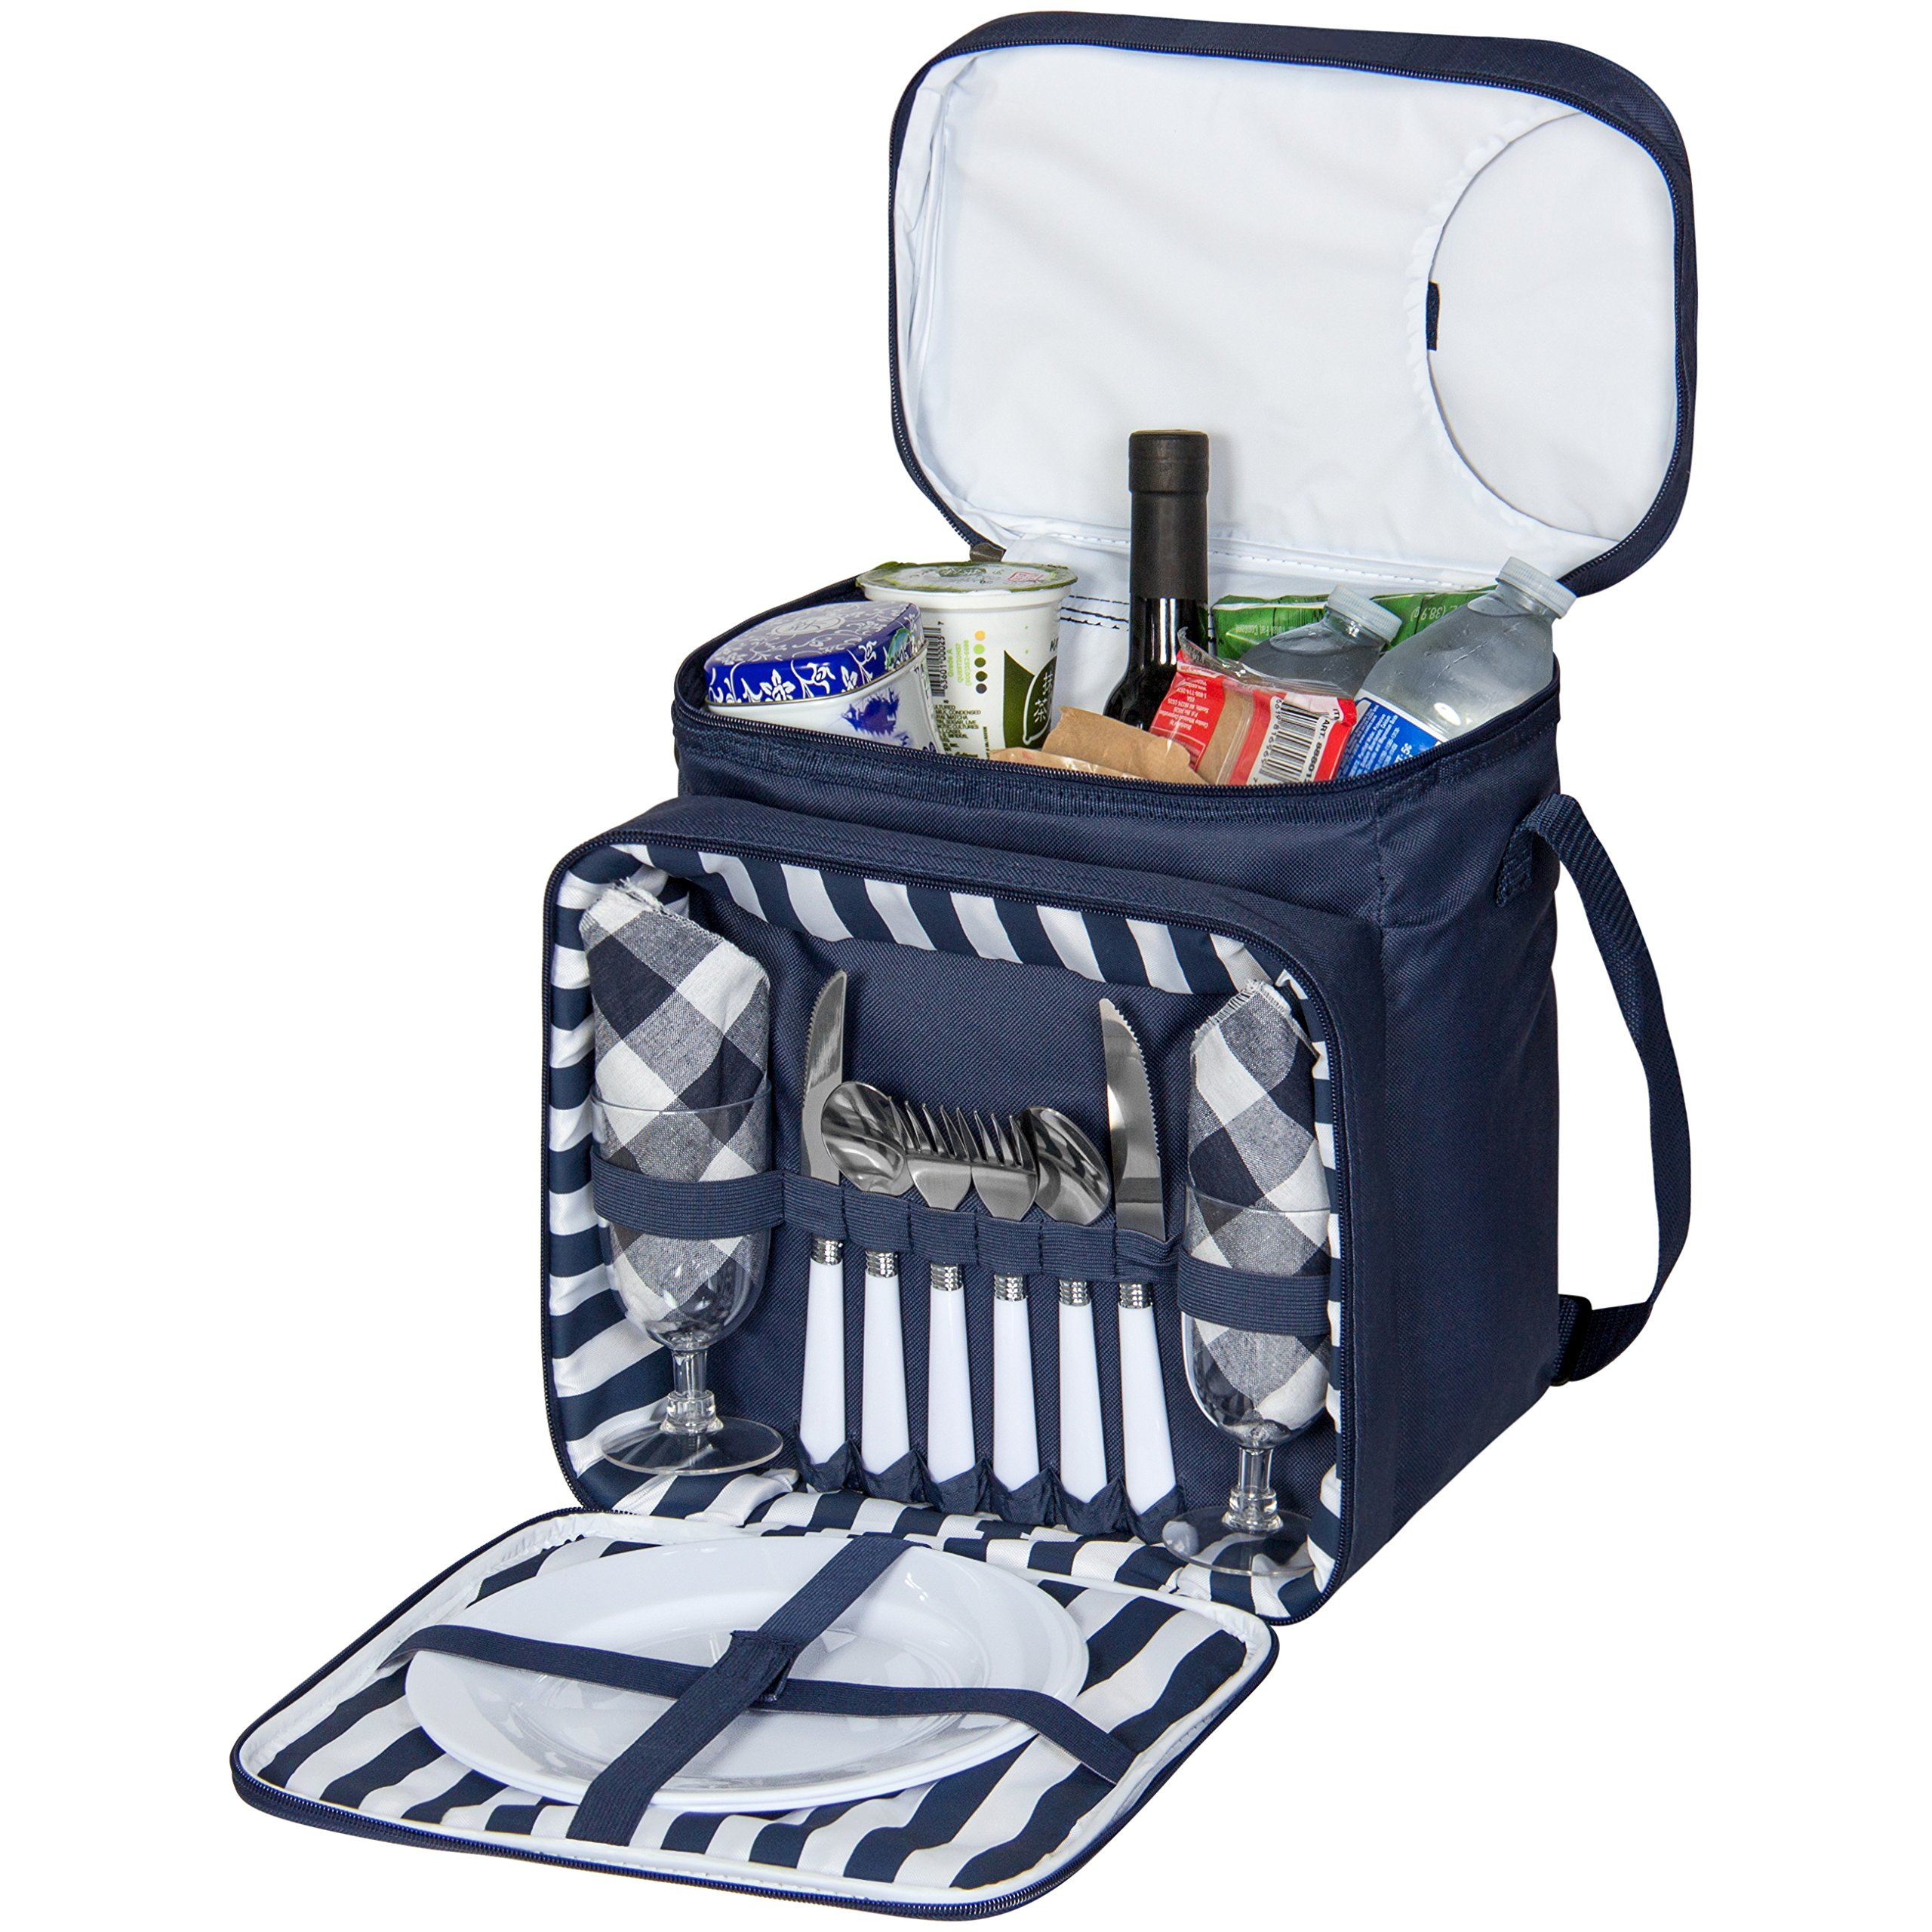 Best Choice Products 2-Person Insulated Picnic Bag Lunch Tote w/Flatware, Plates, Silverware - Blue